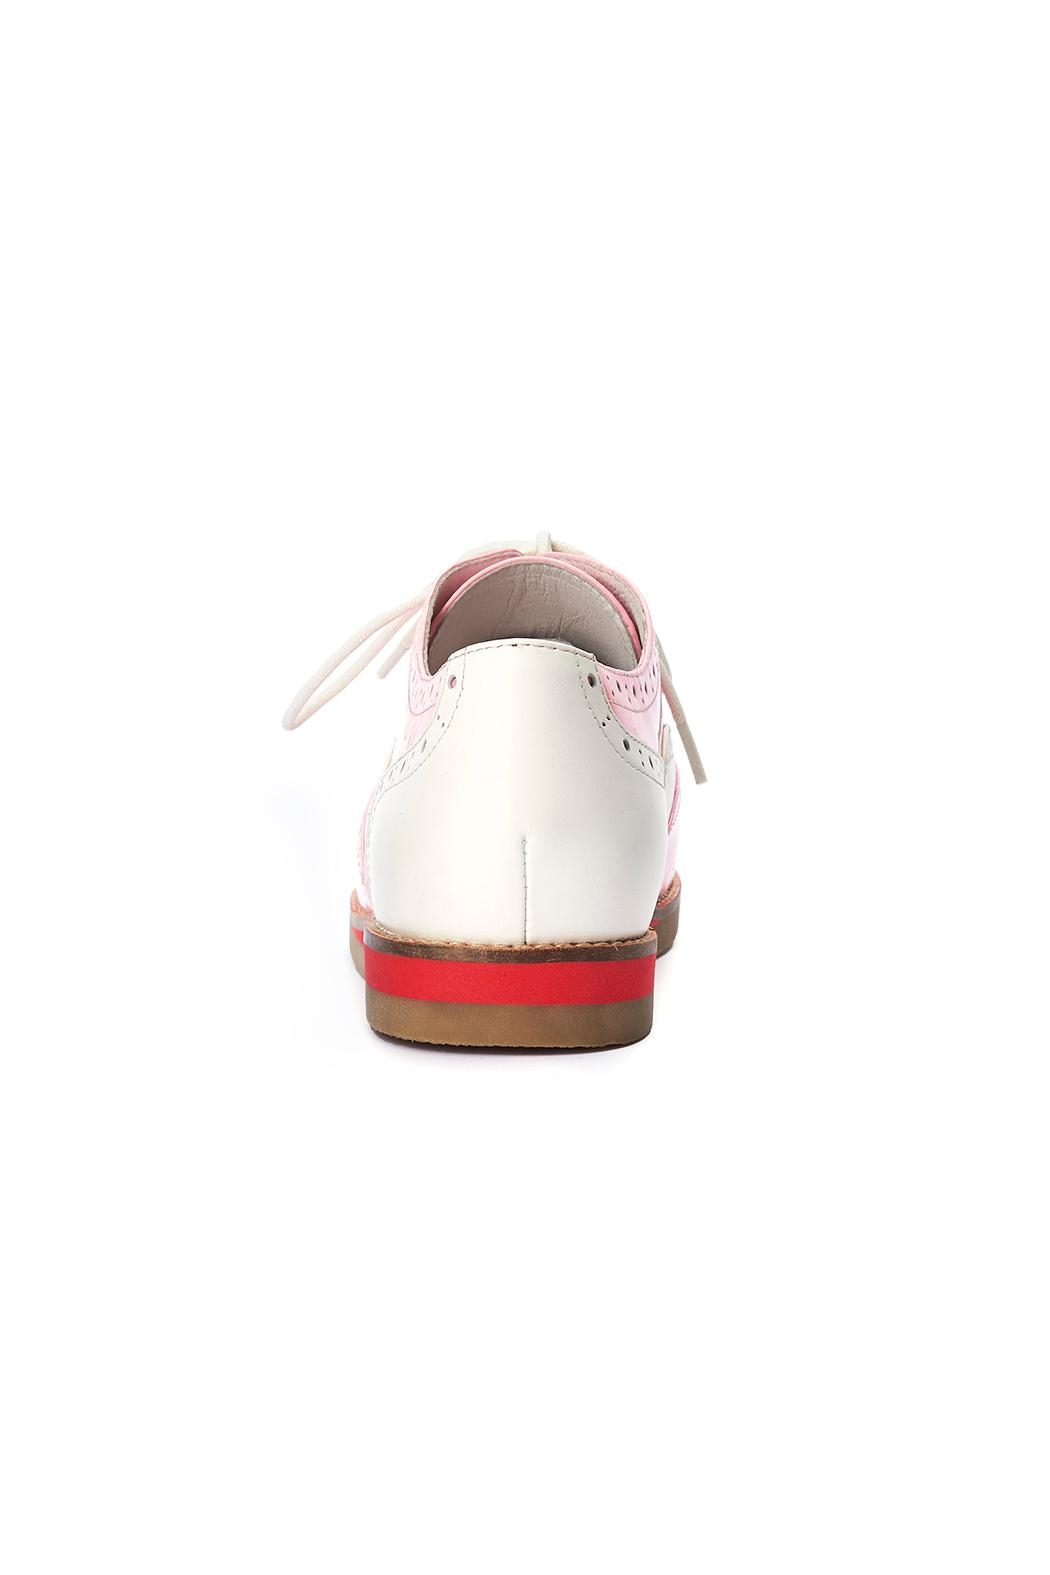 Lola Ramona Cecilia Wingtip Candy Shoes - Back Cropped Image